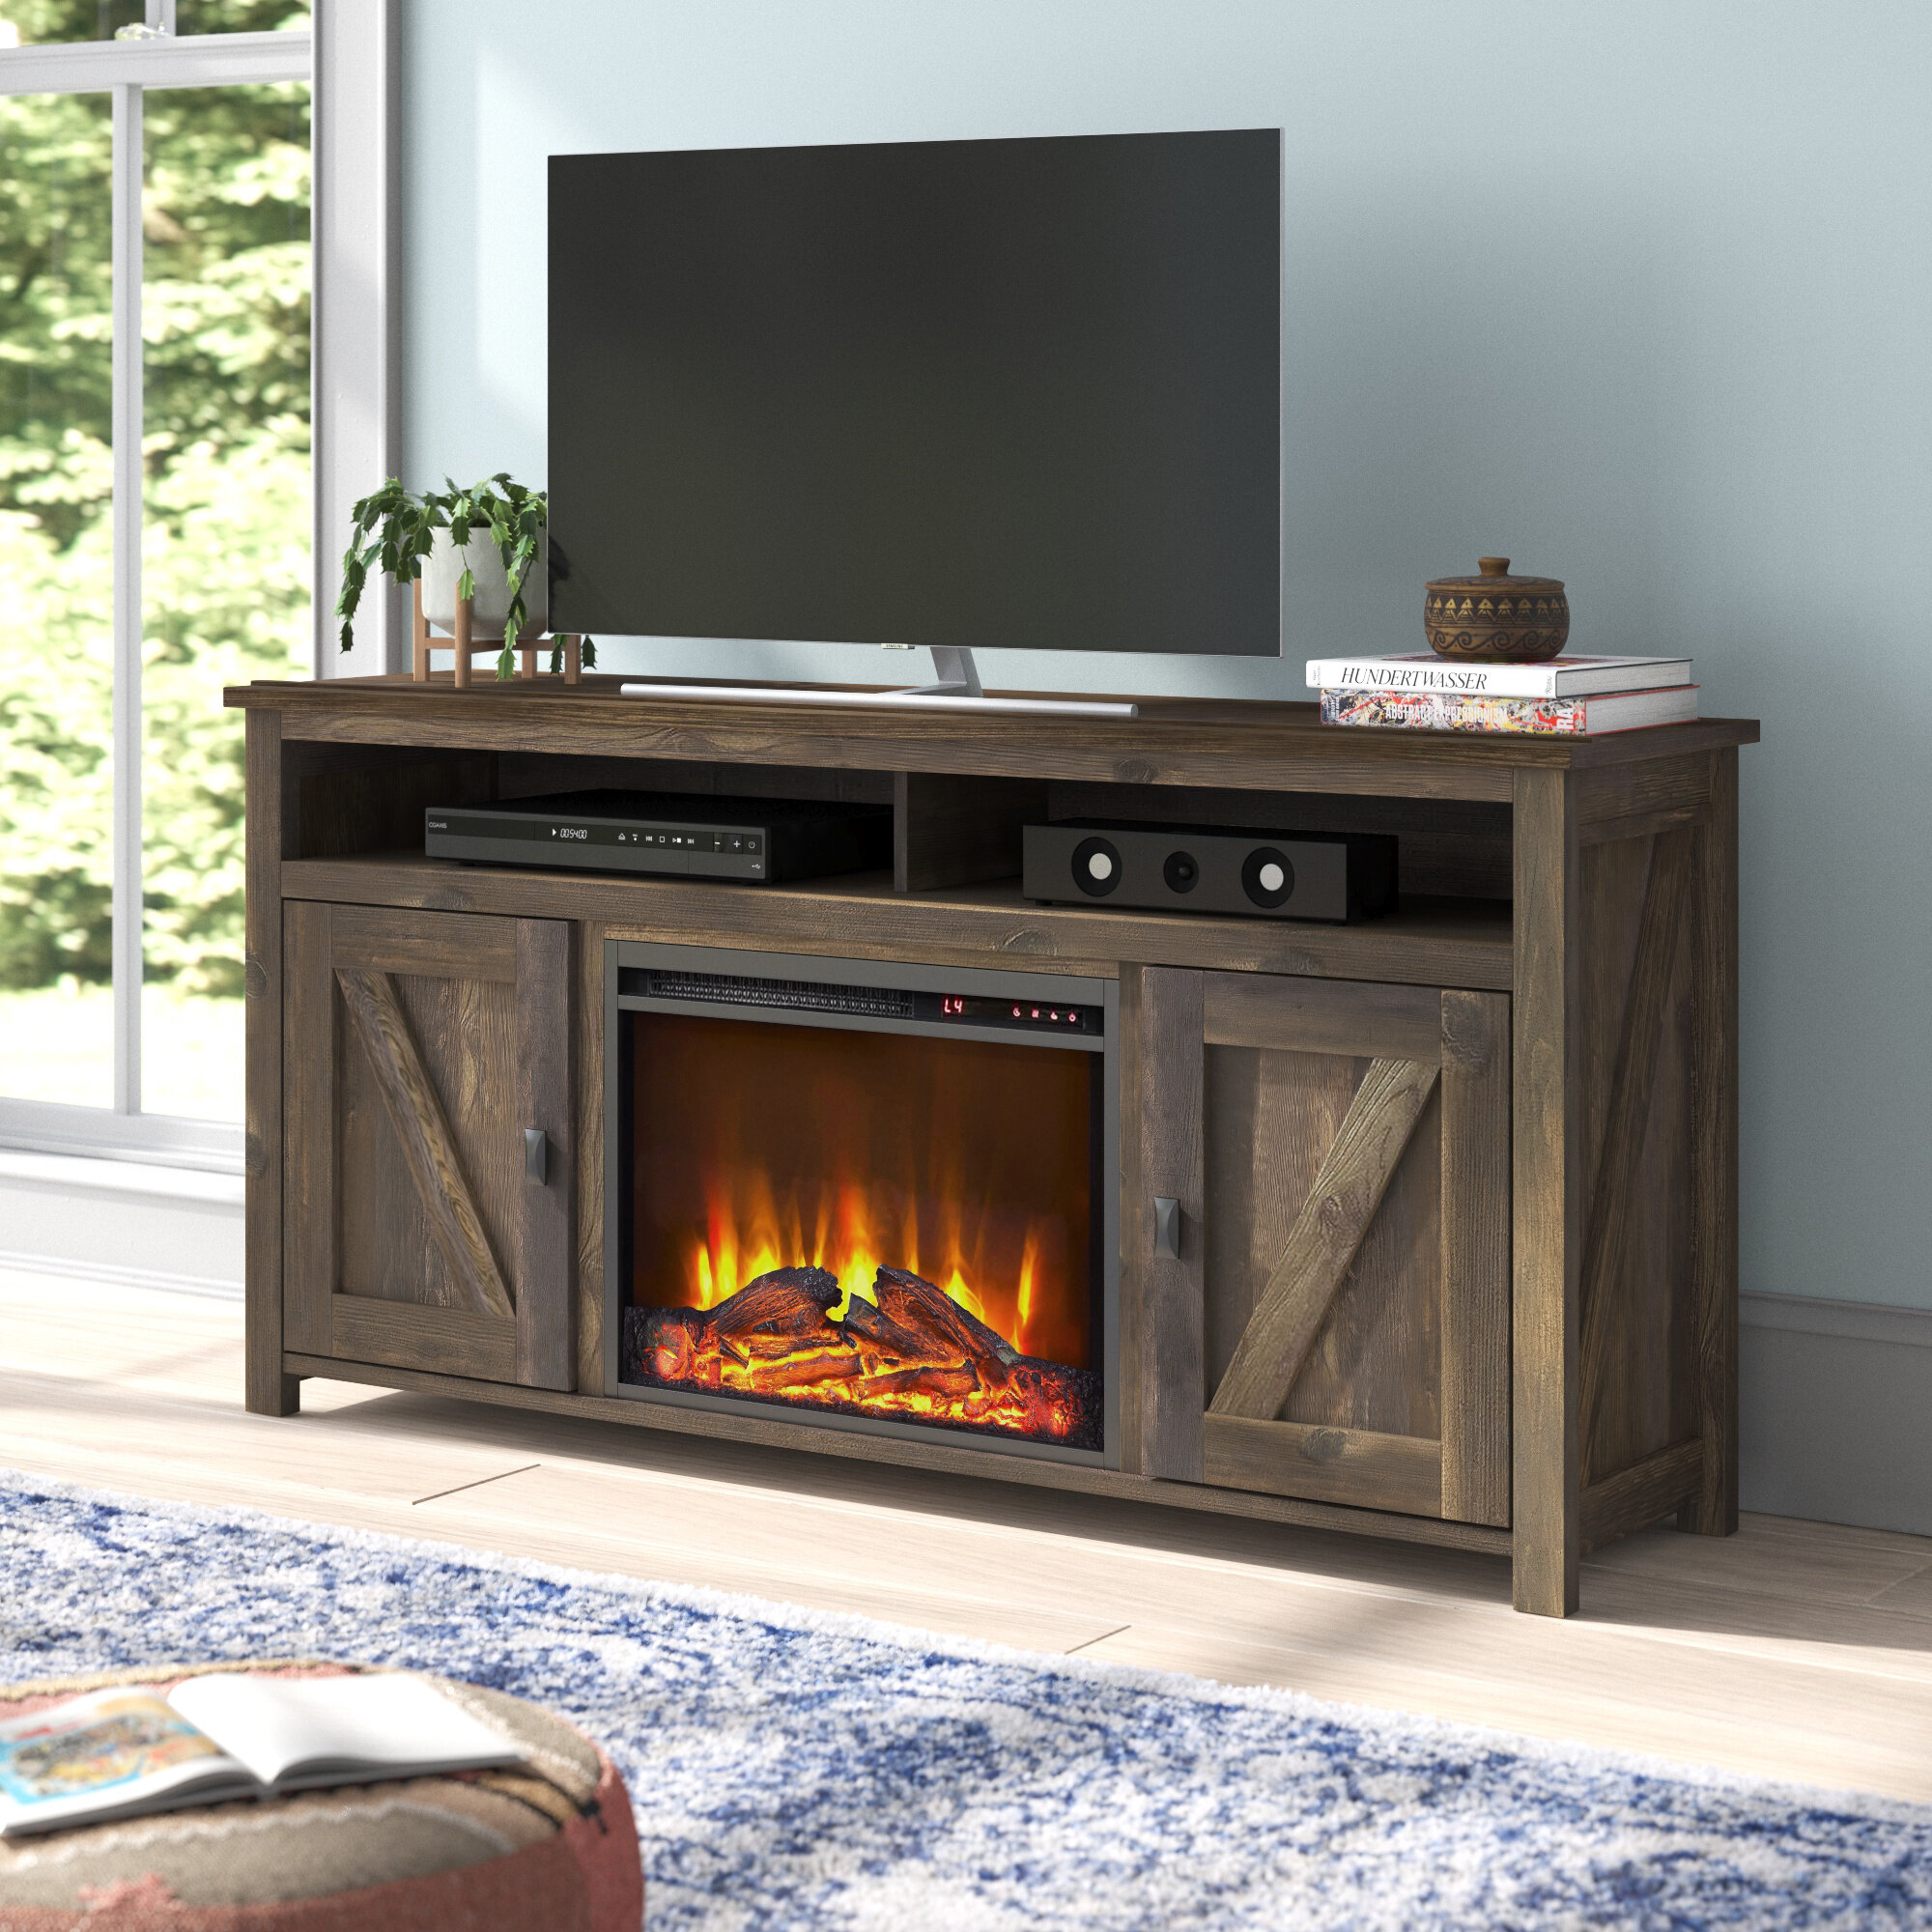 Mistana Whittier Tv Stand For Tvs Up To 65 With Electric Fireplace Included Reviews Wayfair